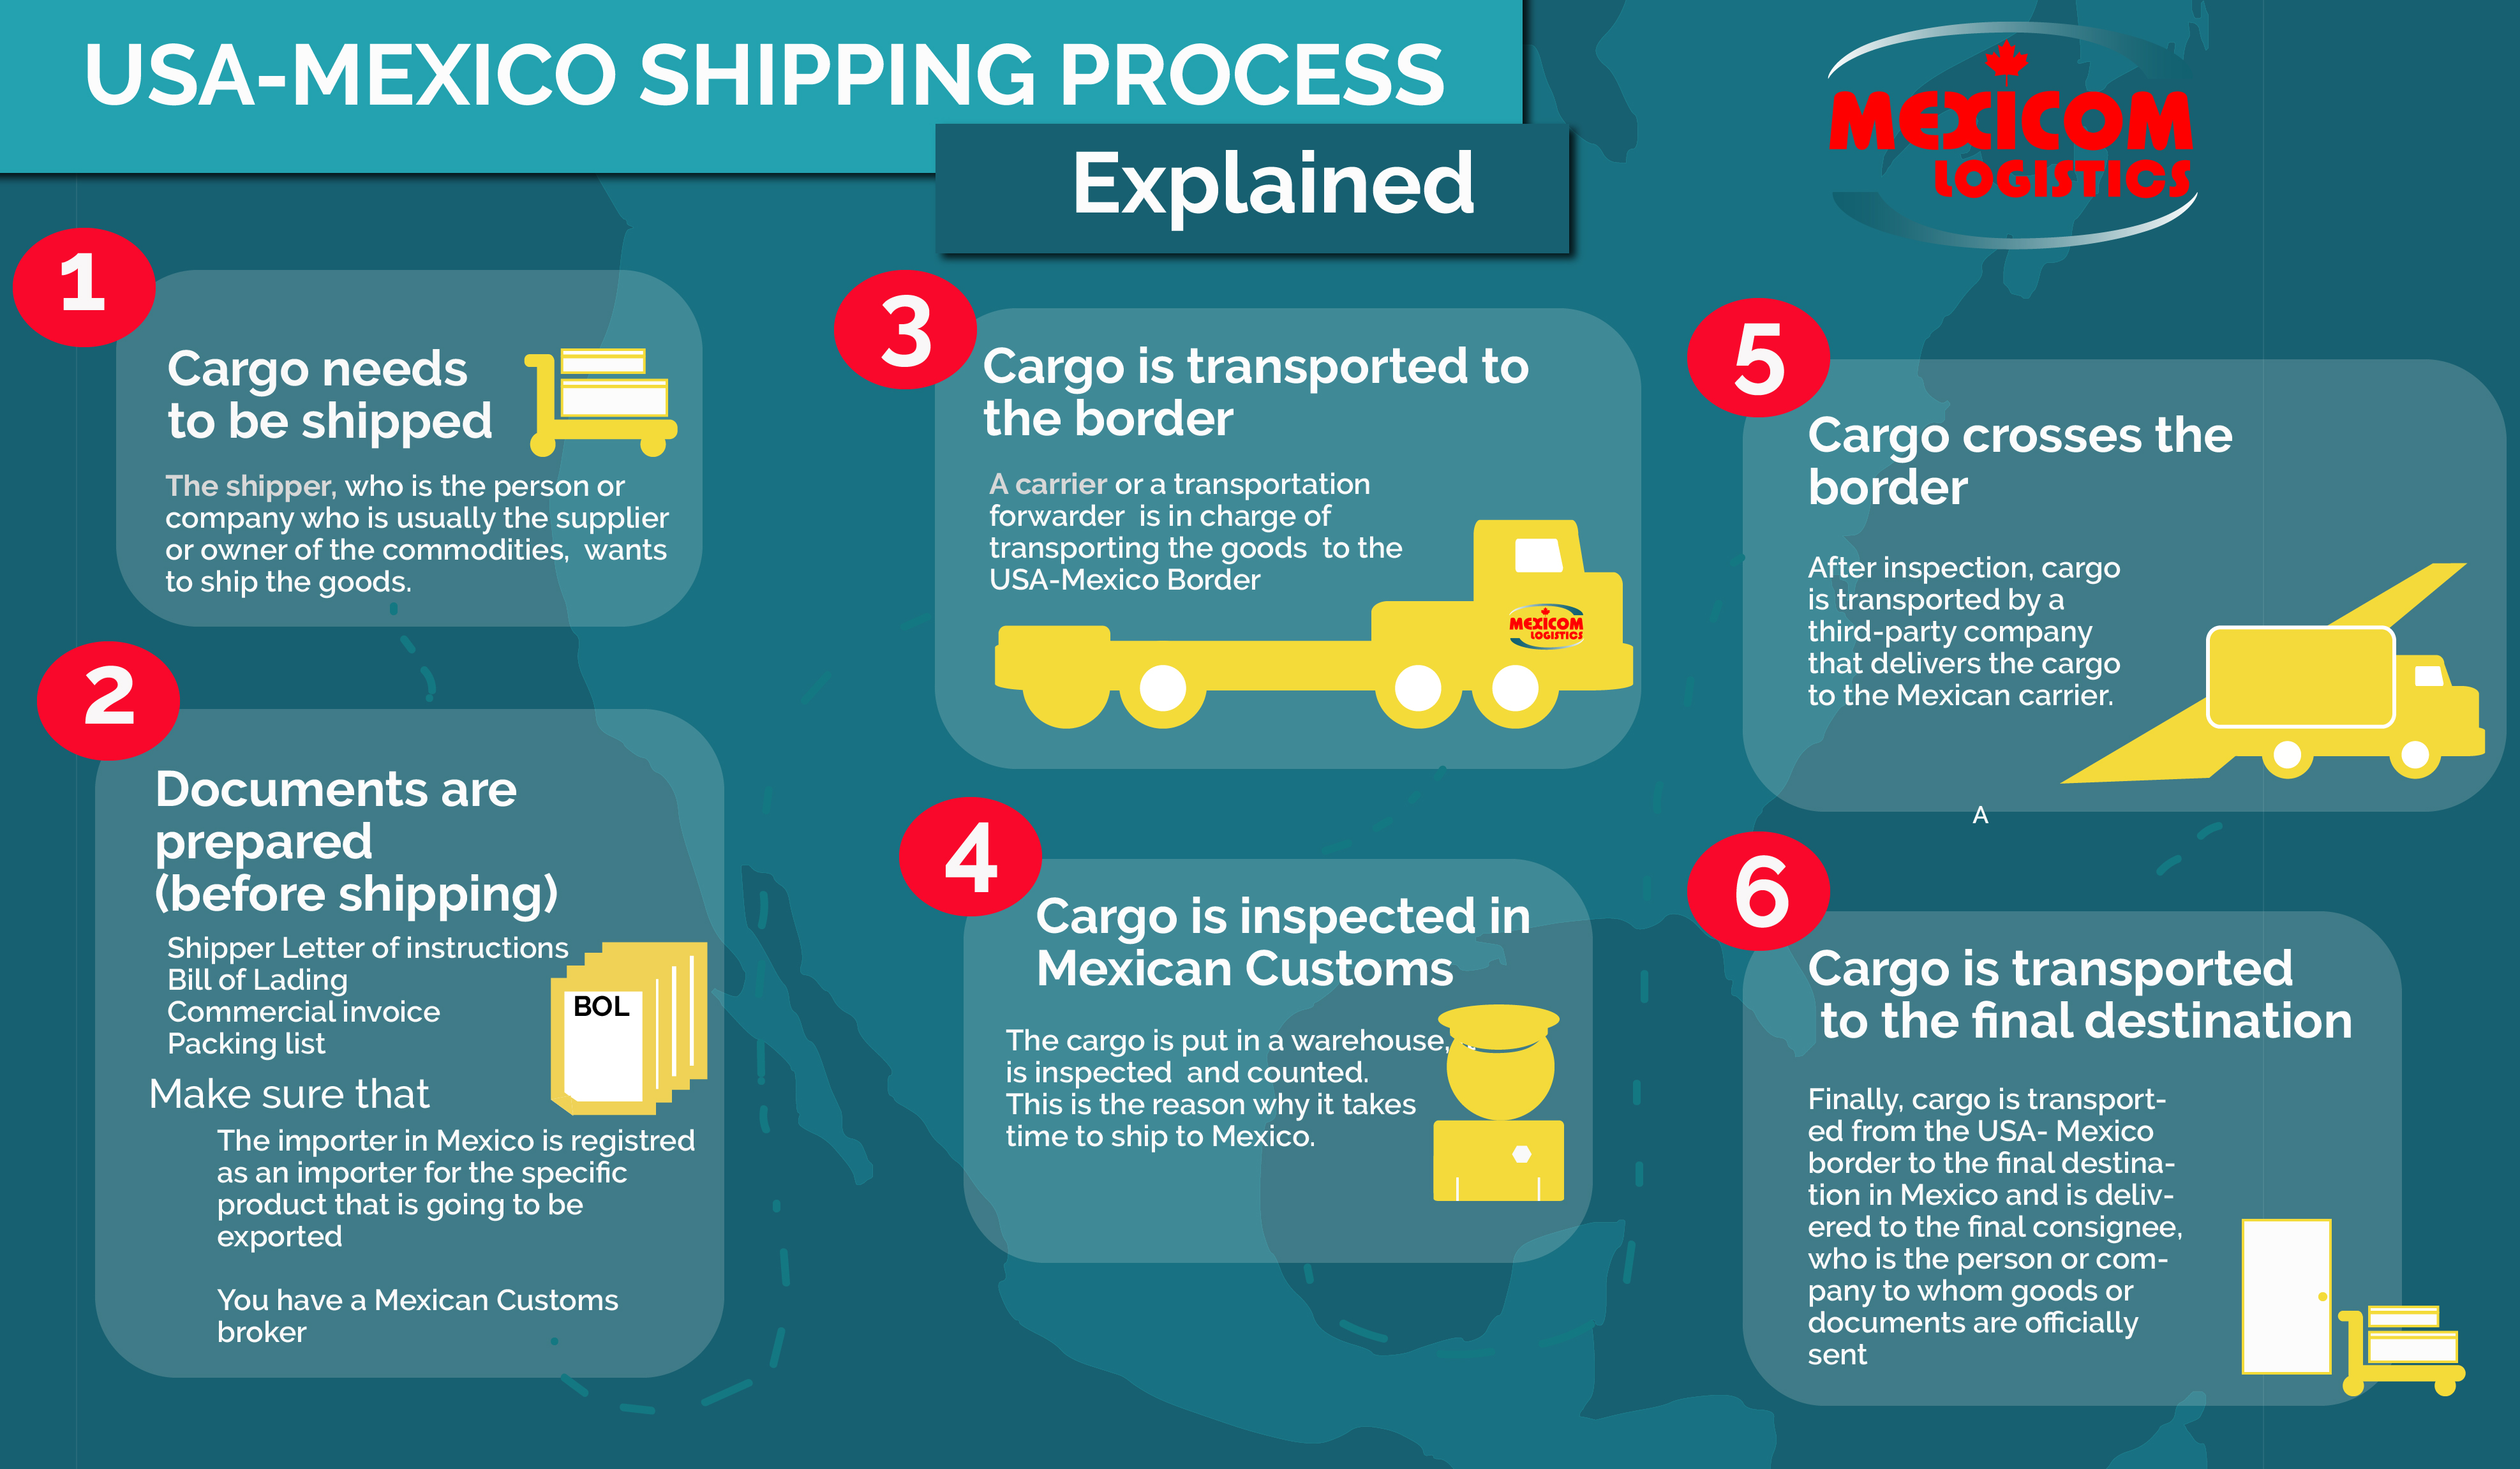 USA-Mexico shipping and border-crossing process